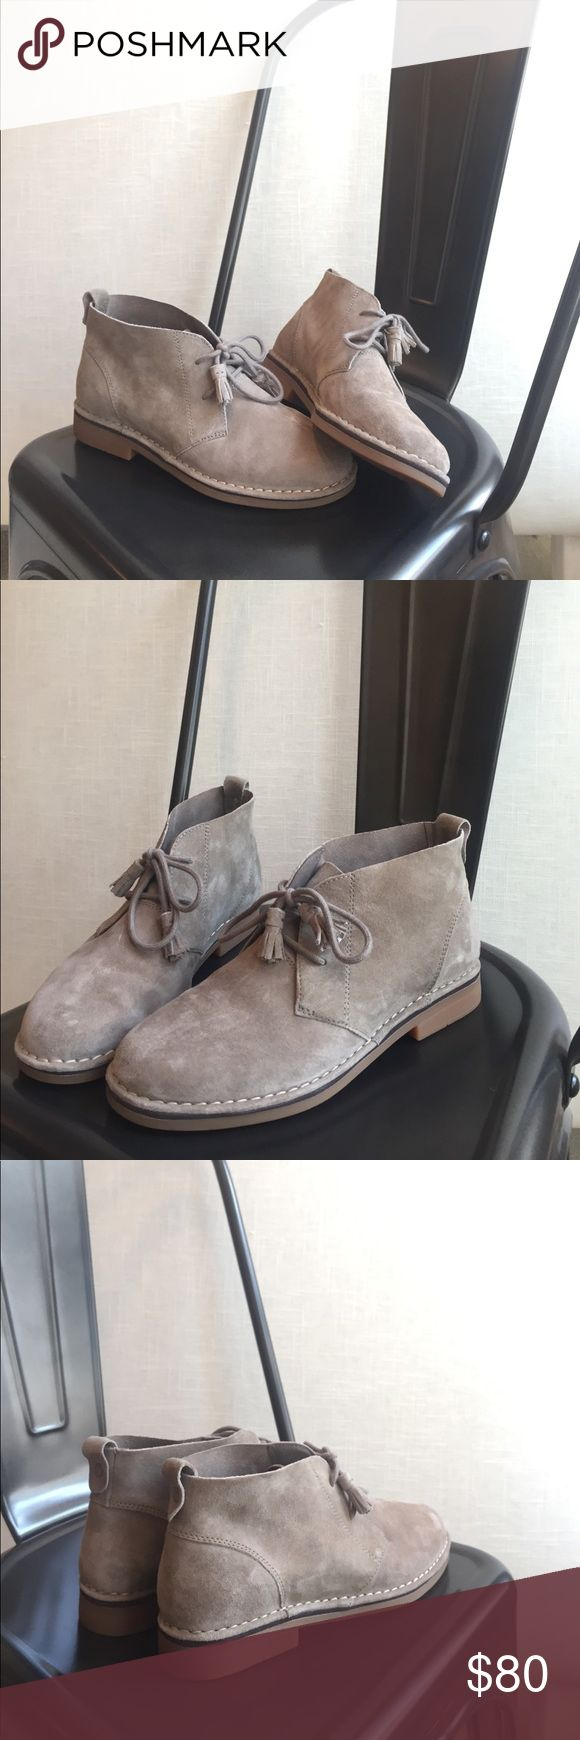 Hush Puppies Cyra Catelyn Taupe Suede Women's Hush Puppies Cyra Catelyn Taupe Suede shoes.  Like new condition! Only worn once. *With box*. Hush Puppies Shoes Ankle Boots & Booties